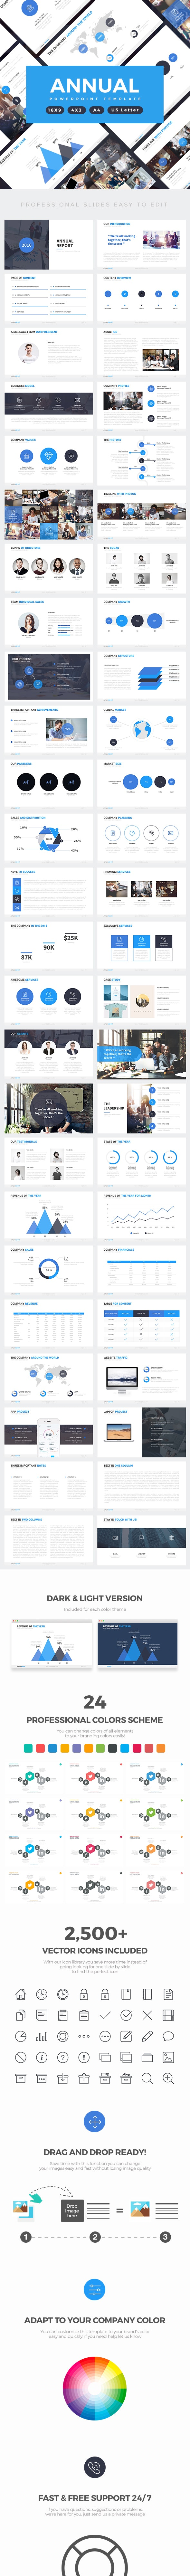 Annual Report Professional Powerpoint Template - Business PowerPoint Templates